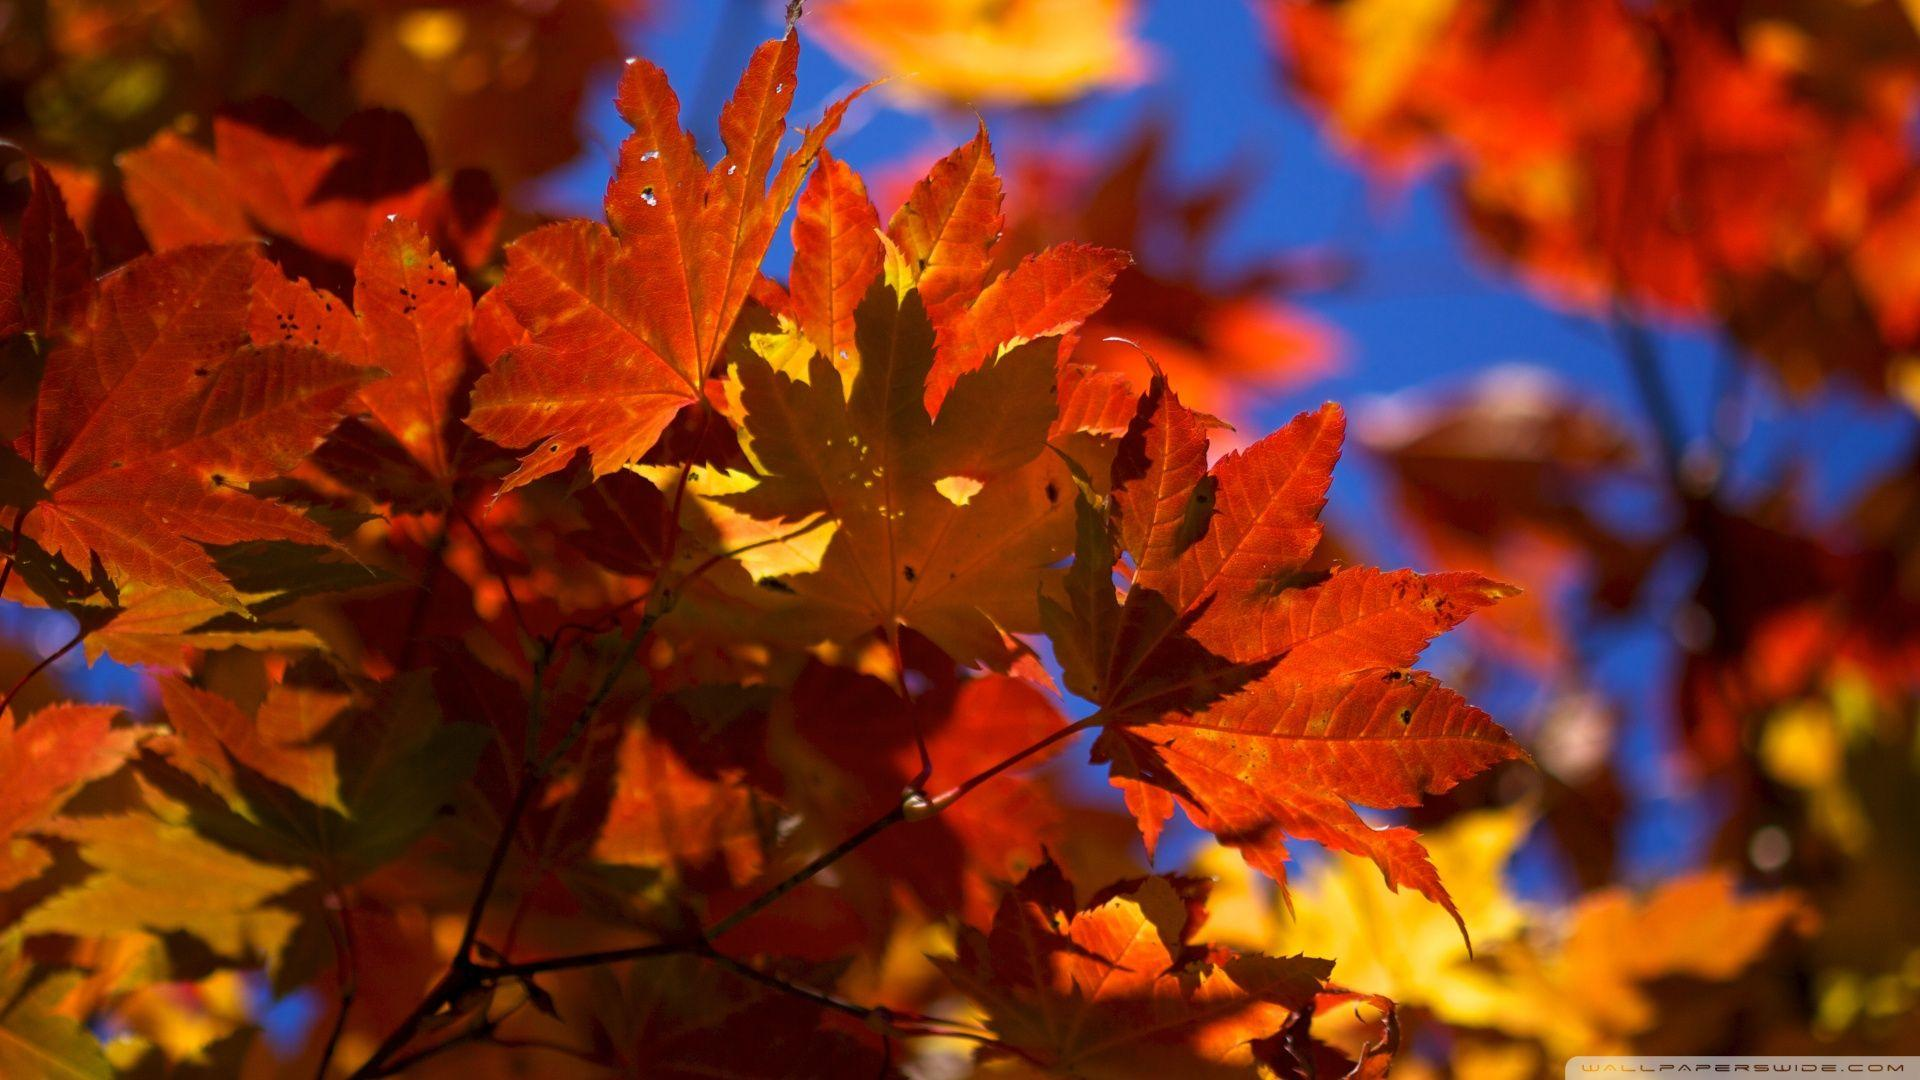 Autumn Leaves best HD Wallpapers - Wallpapers Found